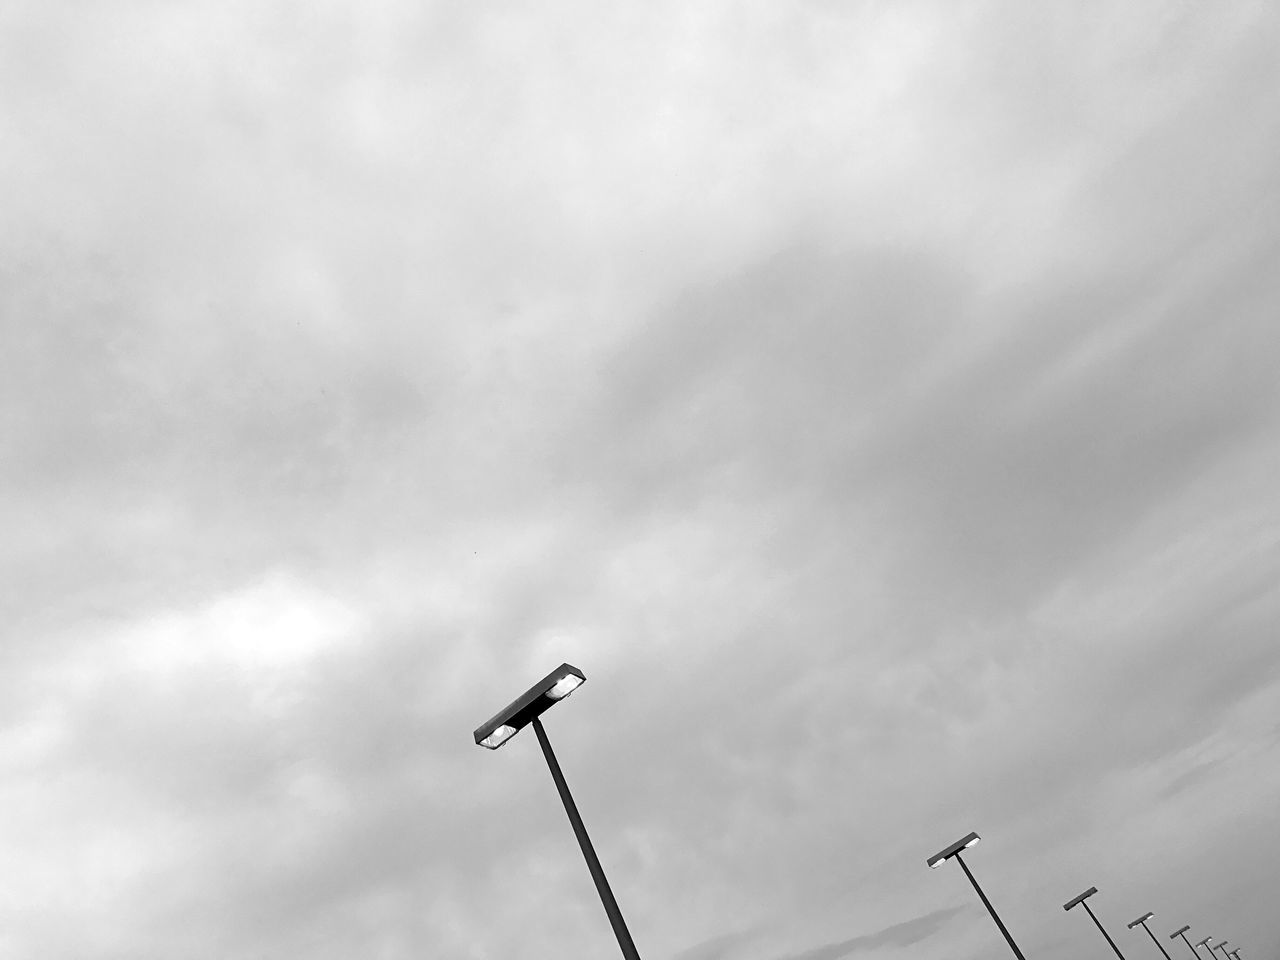 low angle view, communication, technology, sky, day, street light, no people, cloud - sky, outdoors, television aerial, nature